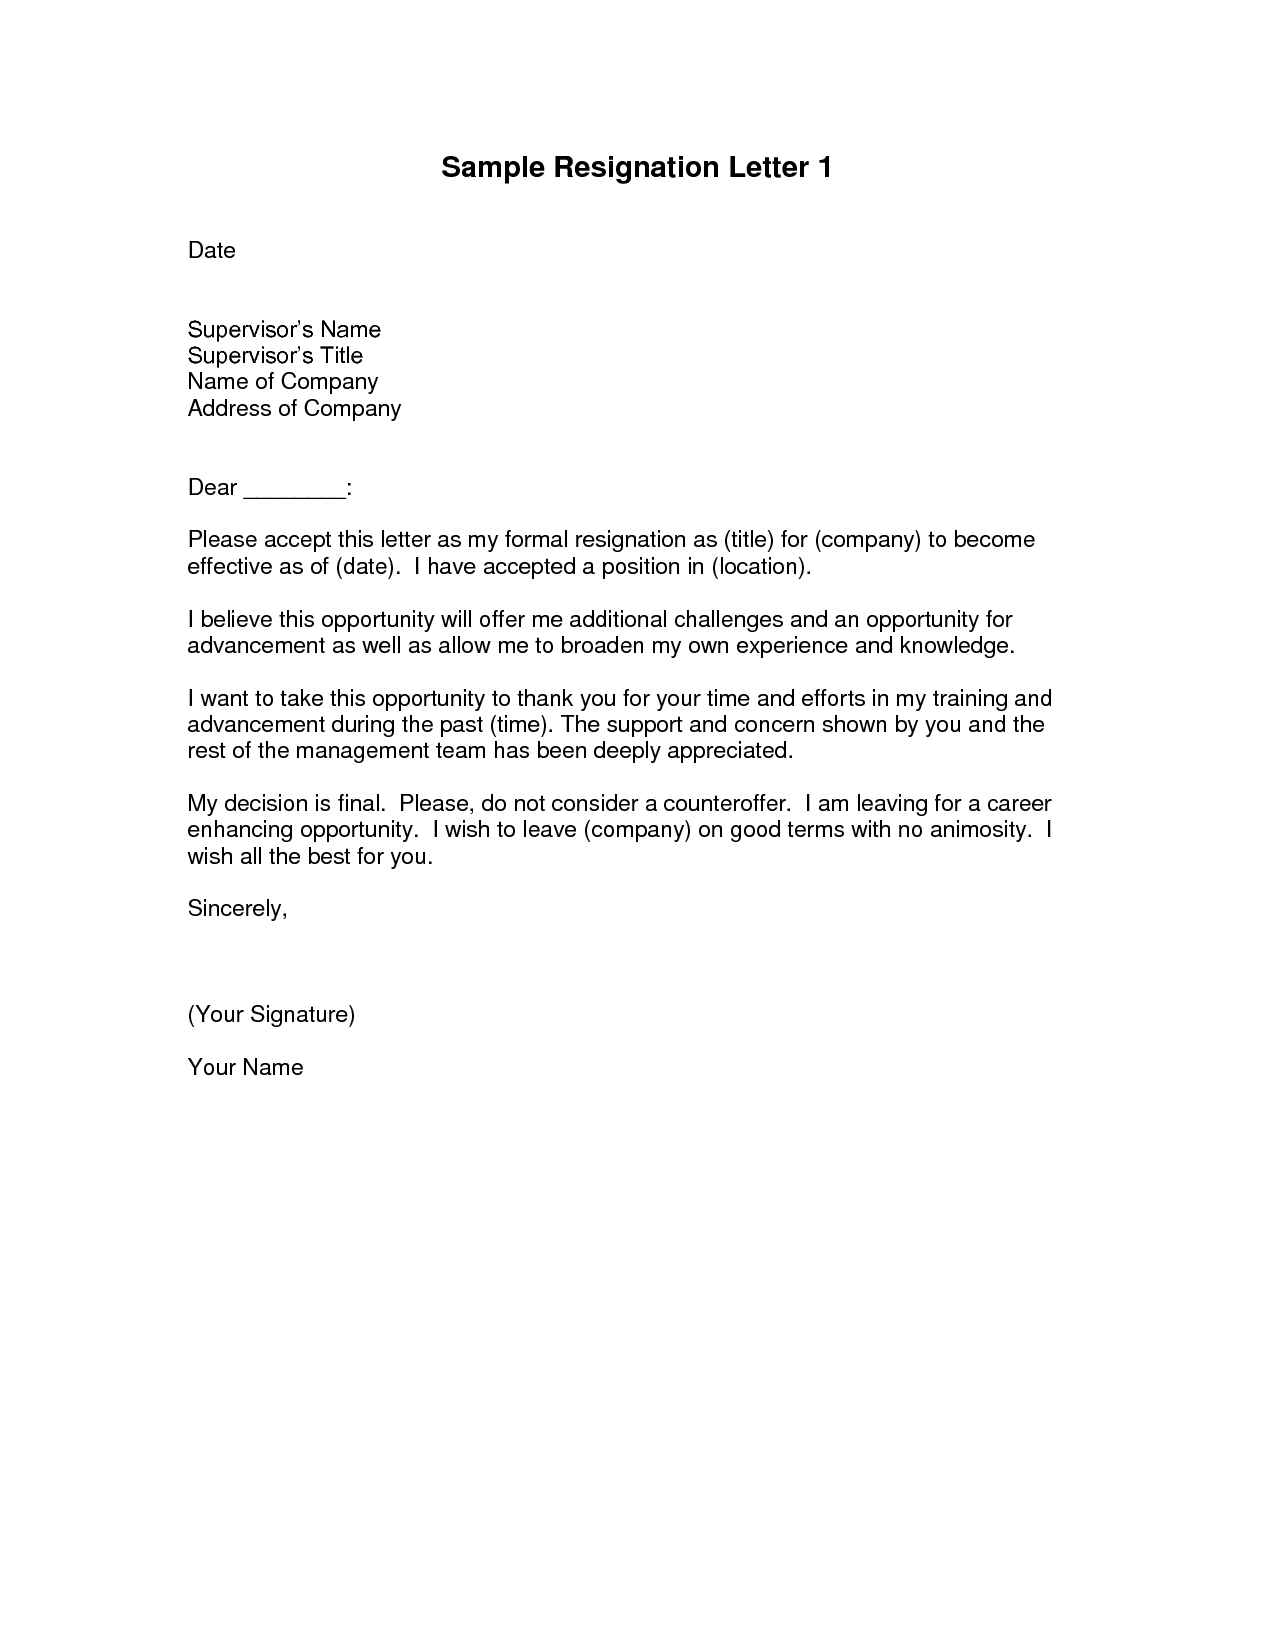 example resignation letter  example of resignation letter - Google Search | Job Tips and ...